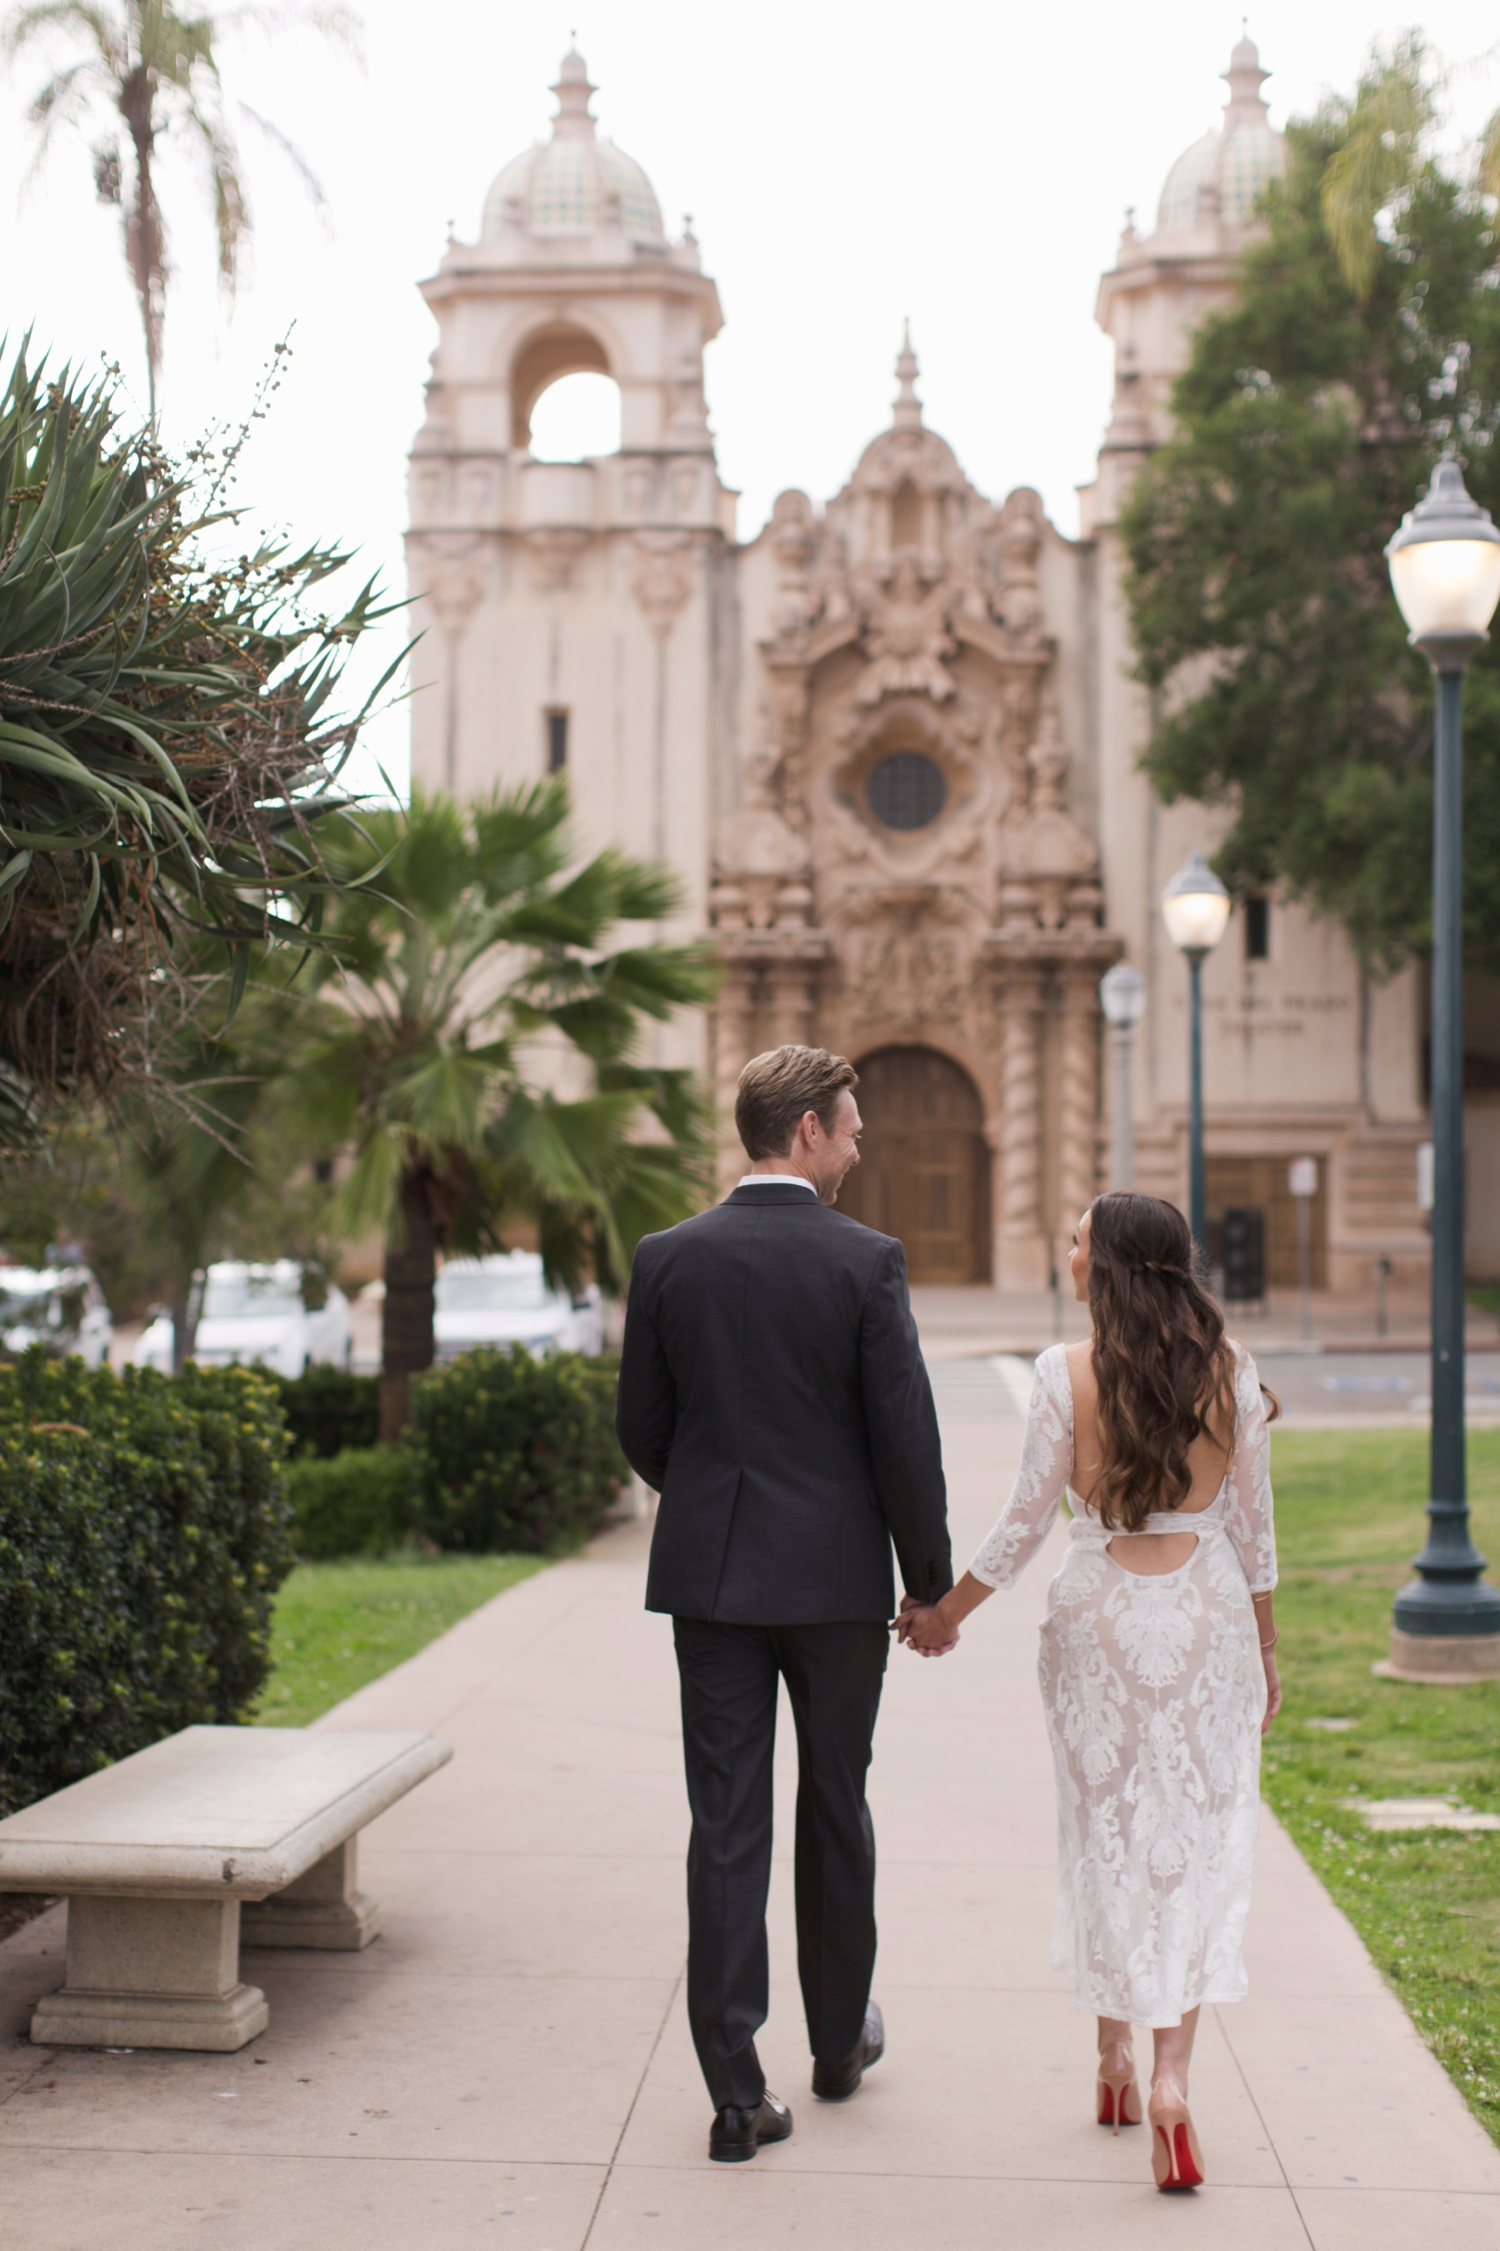 san.diego_.engagement.photography.shewanders.wedding.photography465.jpg.engagement.photography.shewanders.wedding.photography.jpg